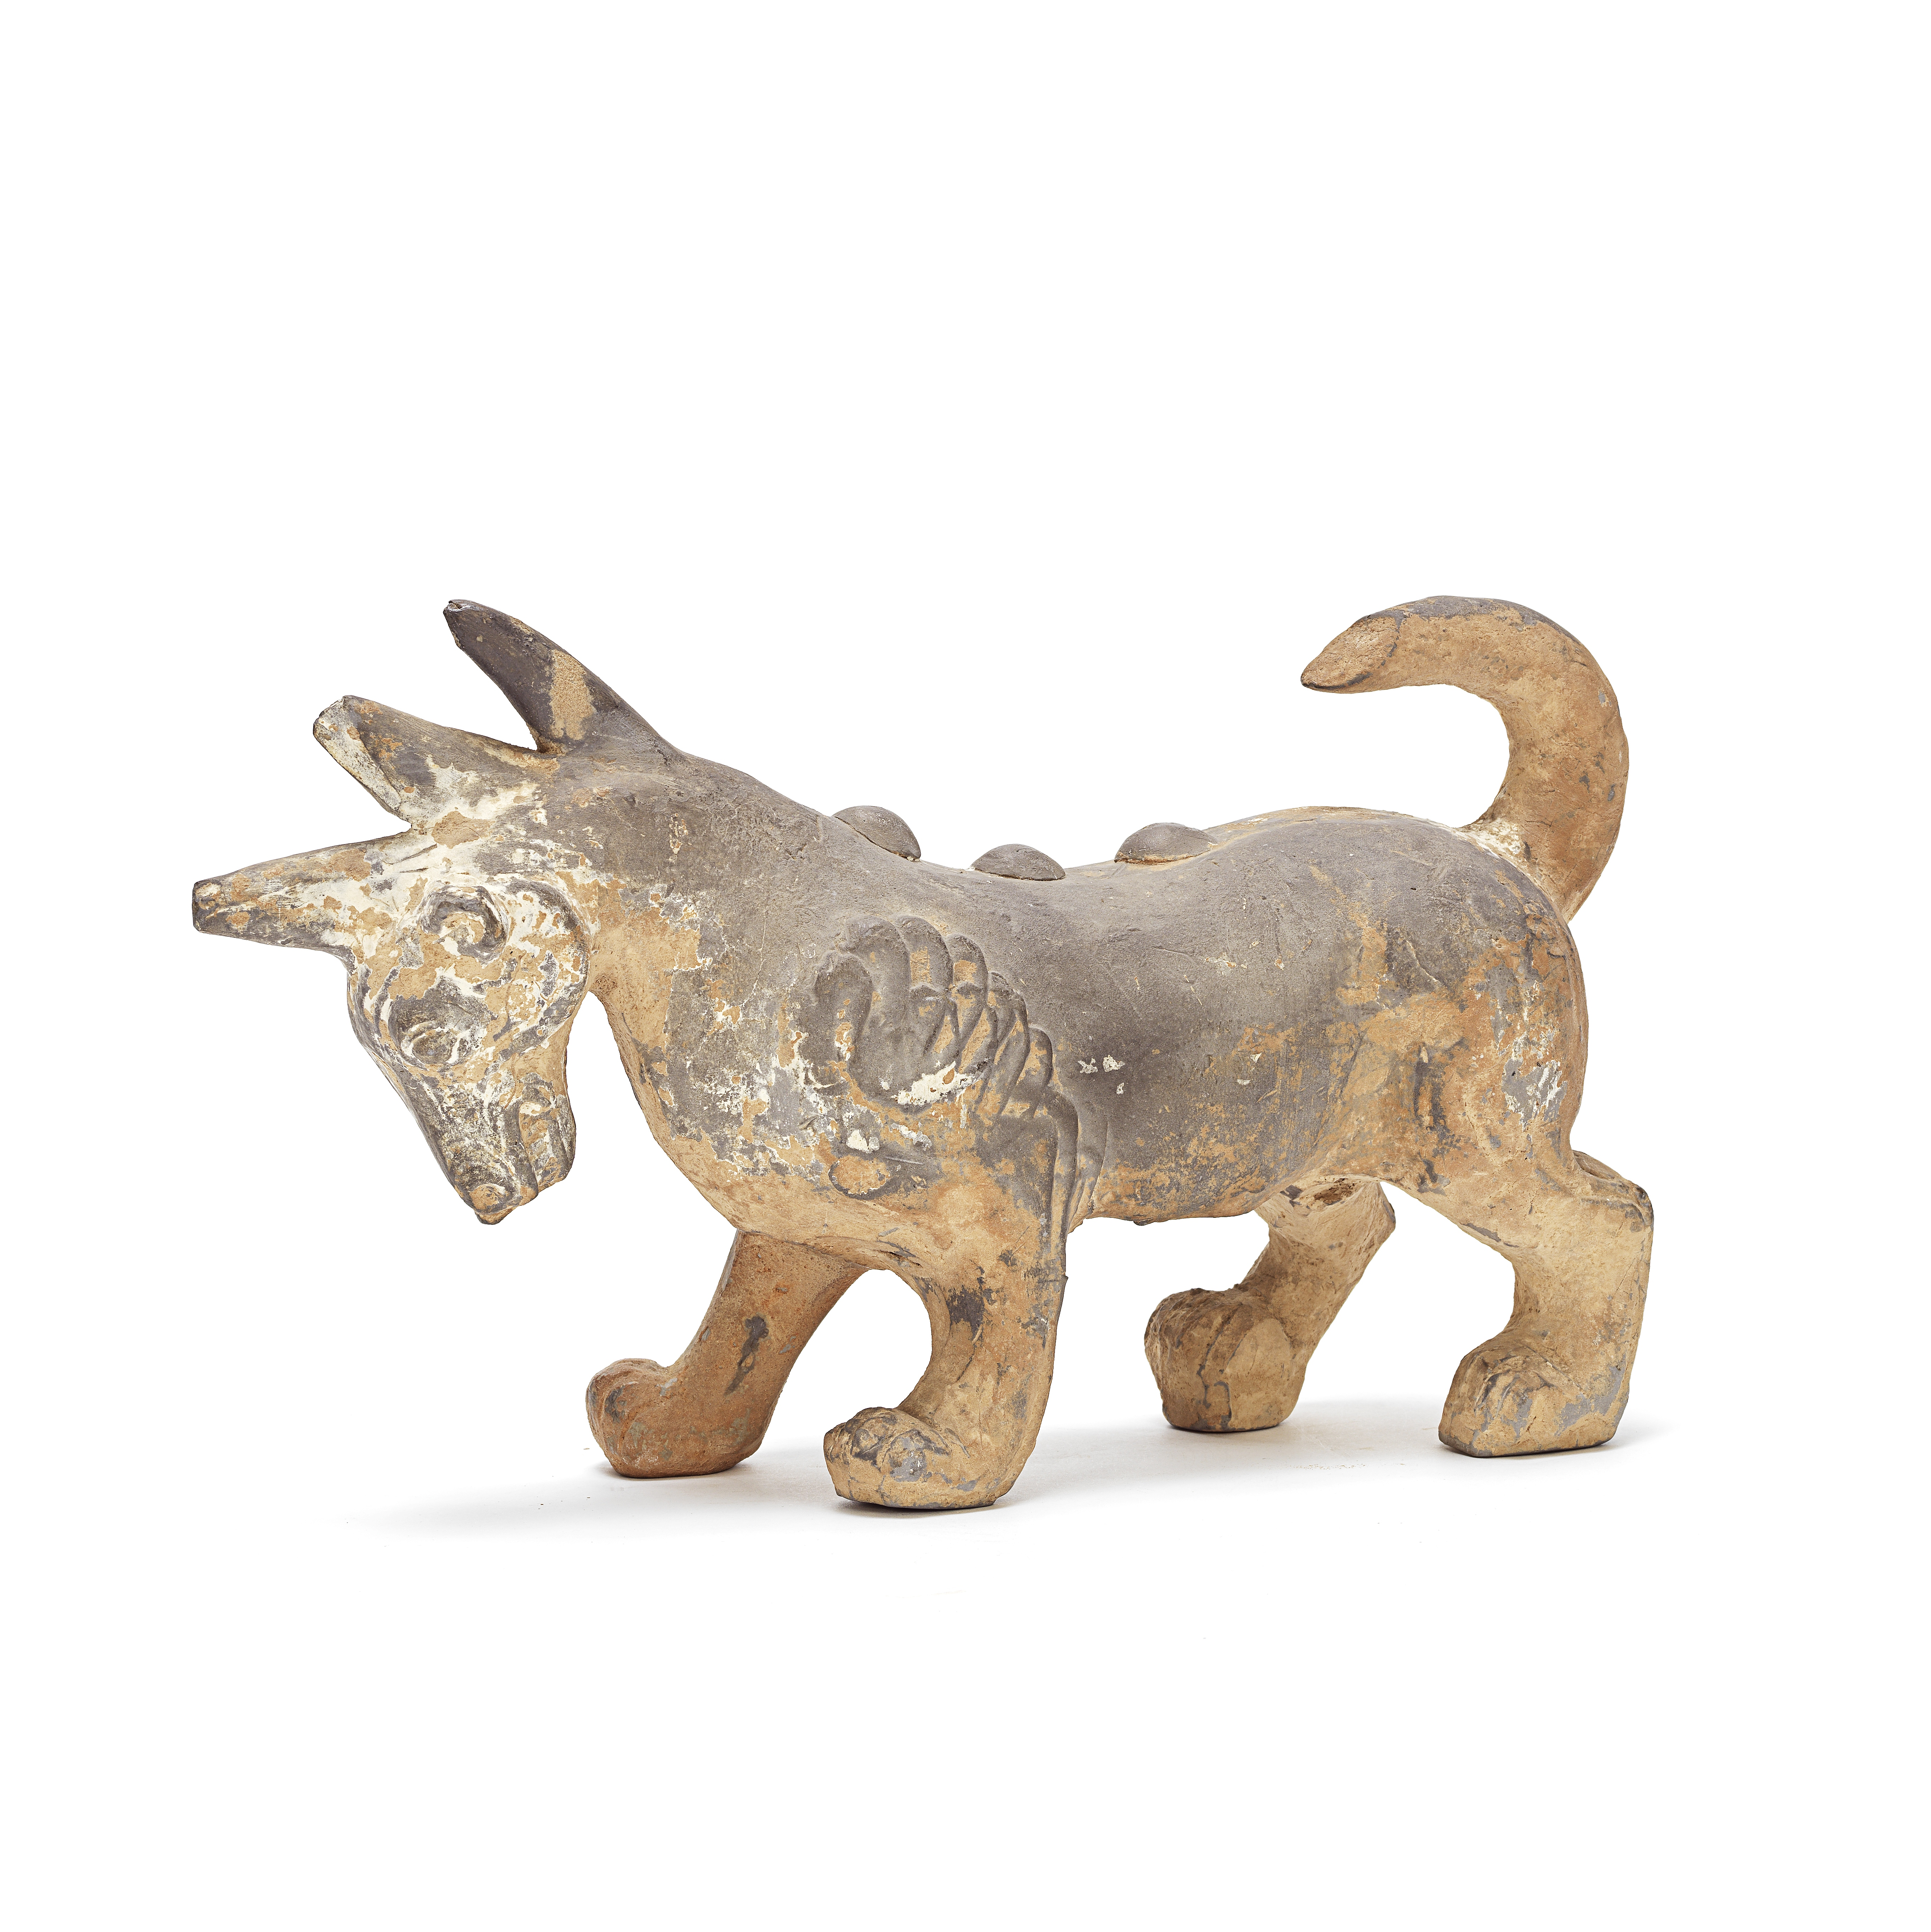 A RARE AND UNUSUAL PAINTED GREY POTTERY FIGURE OF A TRICORN BEAST Han Dynasty